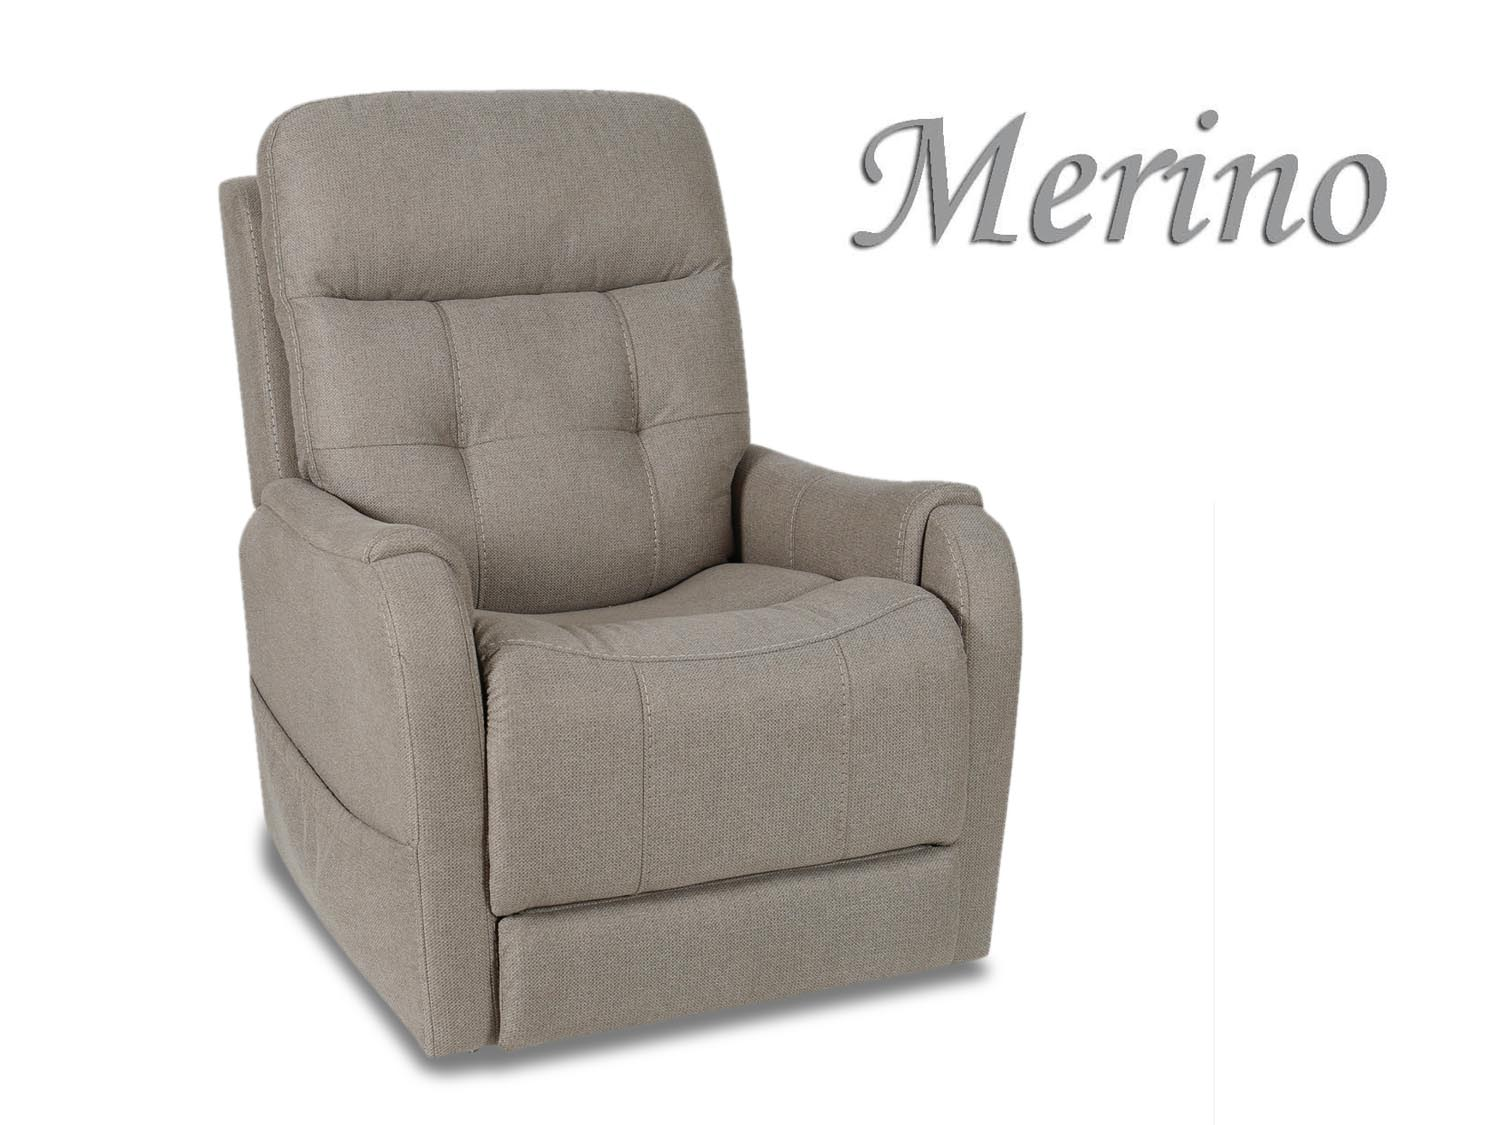 Barbo's Furniture, Merino, Power, Lift, Recliner, Chair, Living Room, Family Room, Den, Transitional, Contemporary, Modern, Sleek, Coastal, Cape Cod, Fabric